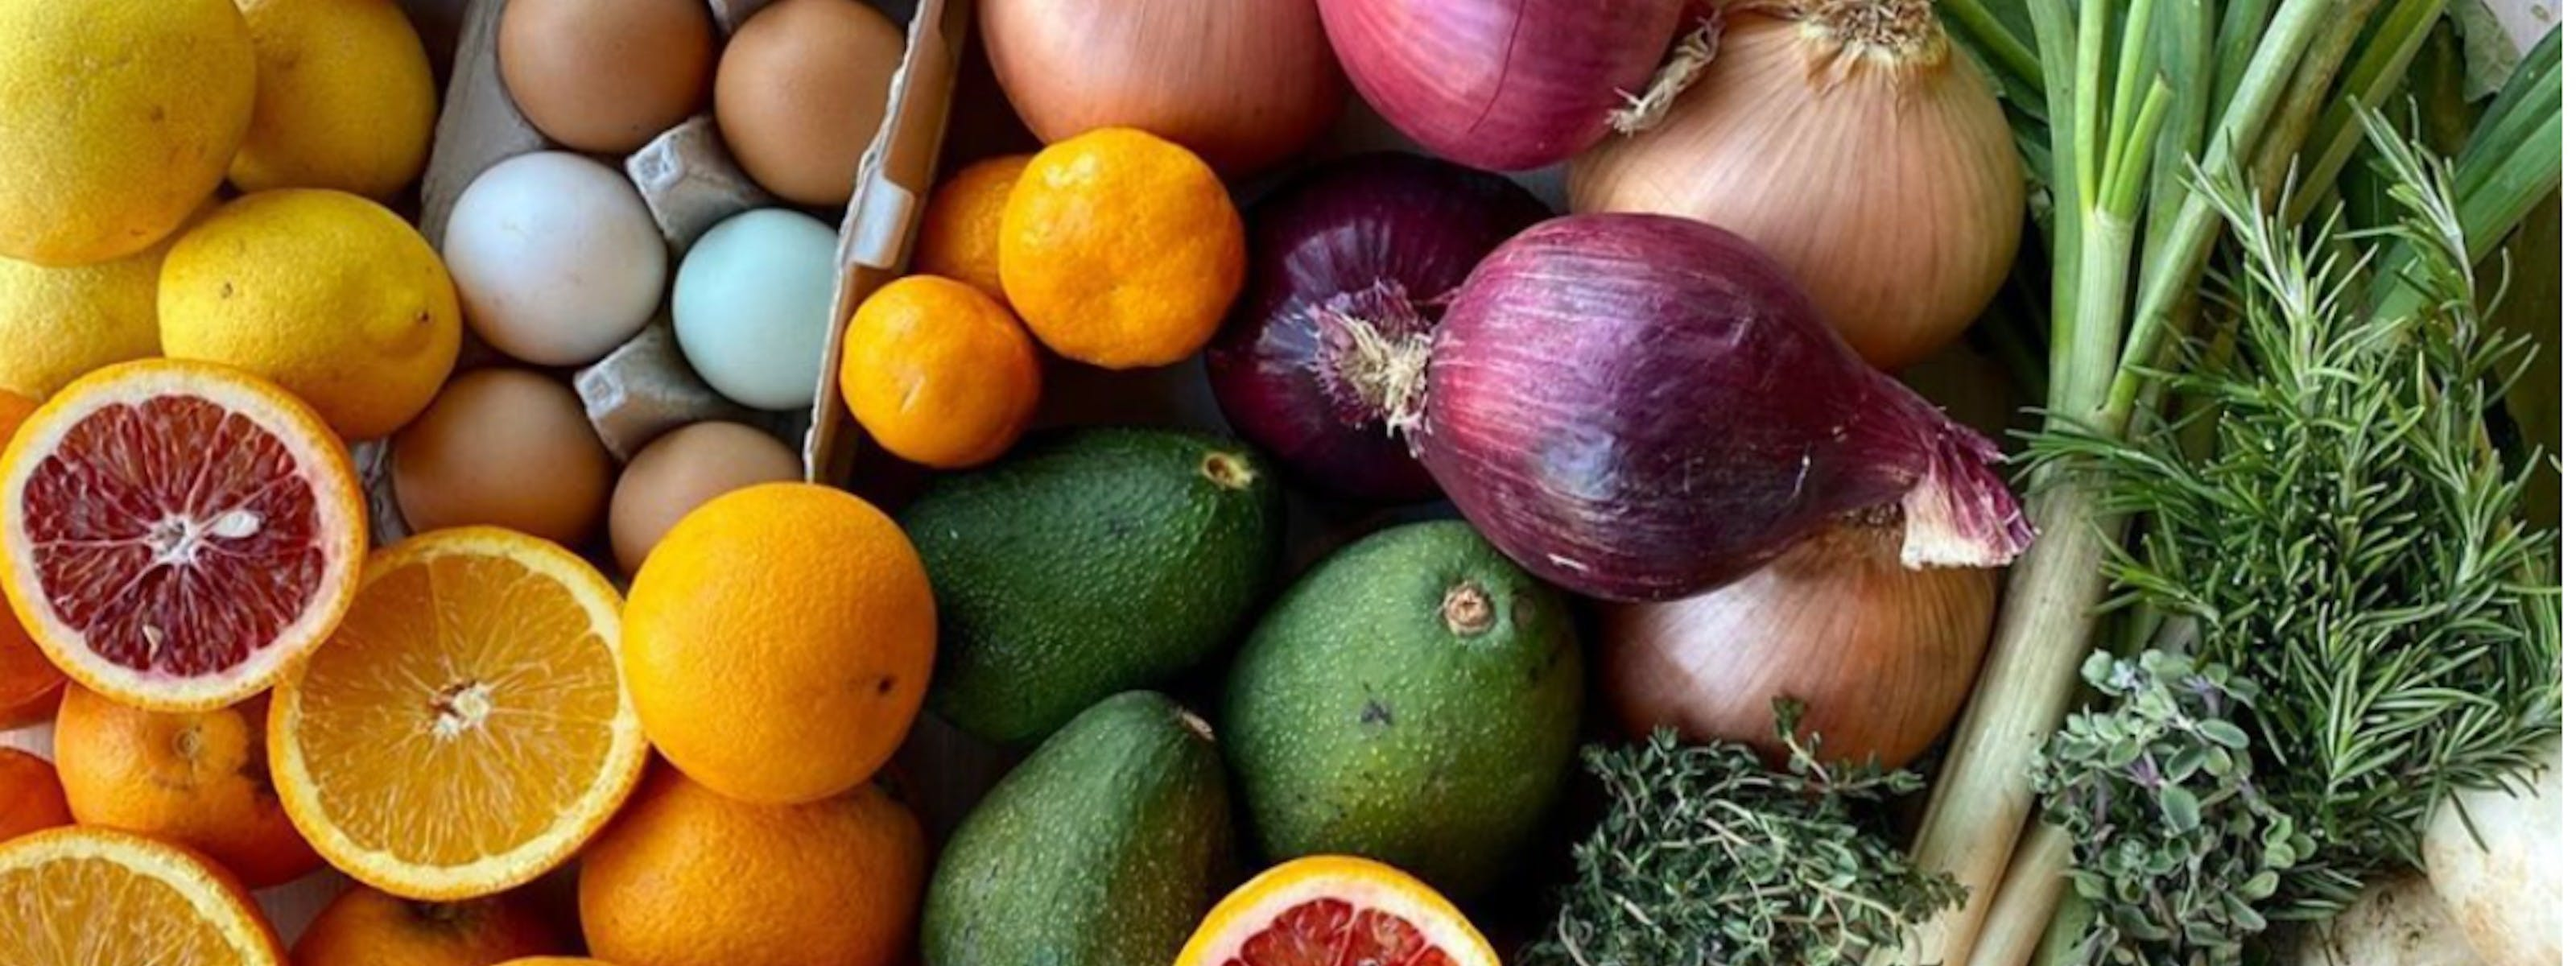 12 Great Produce Boxes To Order & Support LA Farms - Los Angeles - The Infatuation